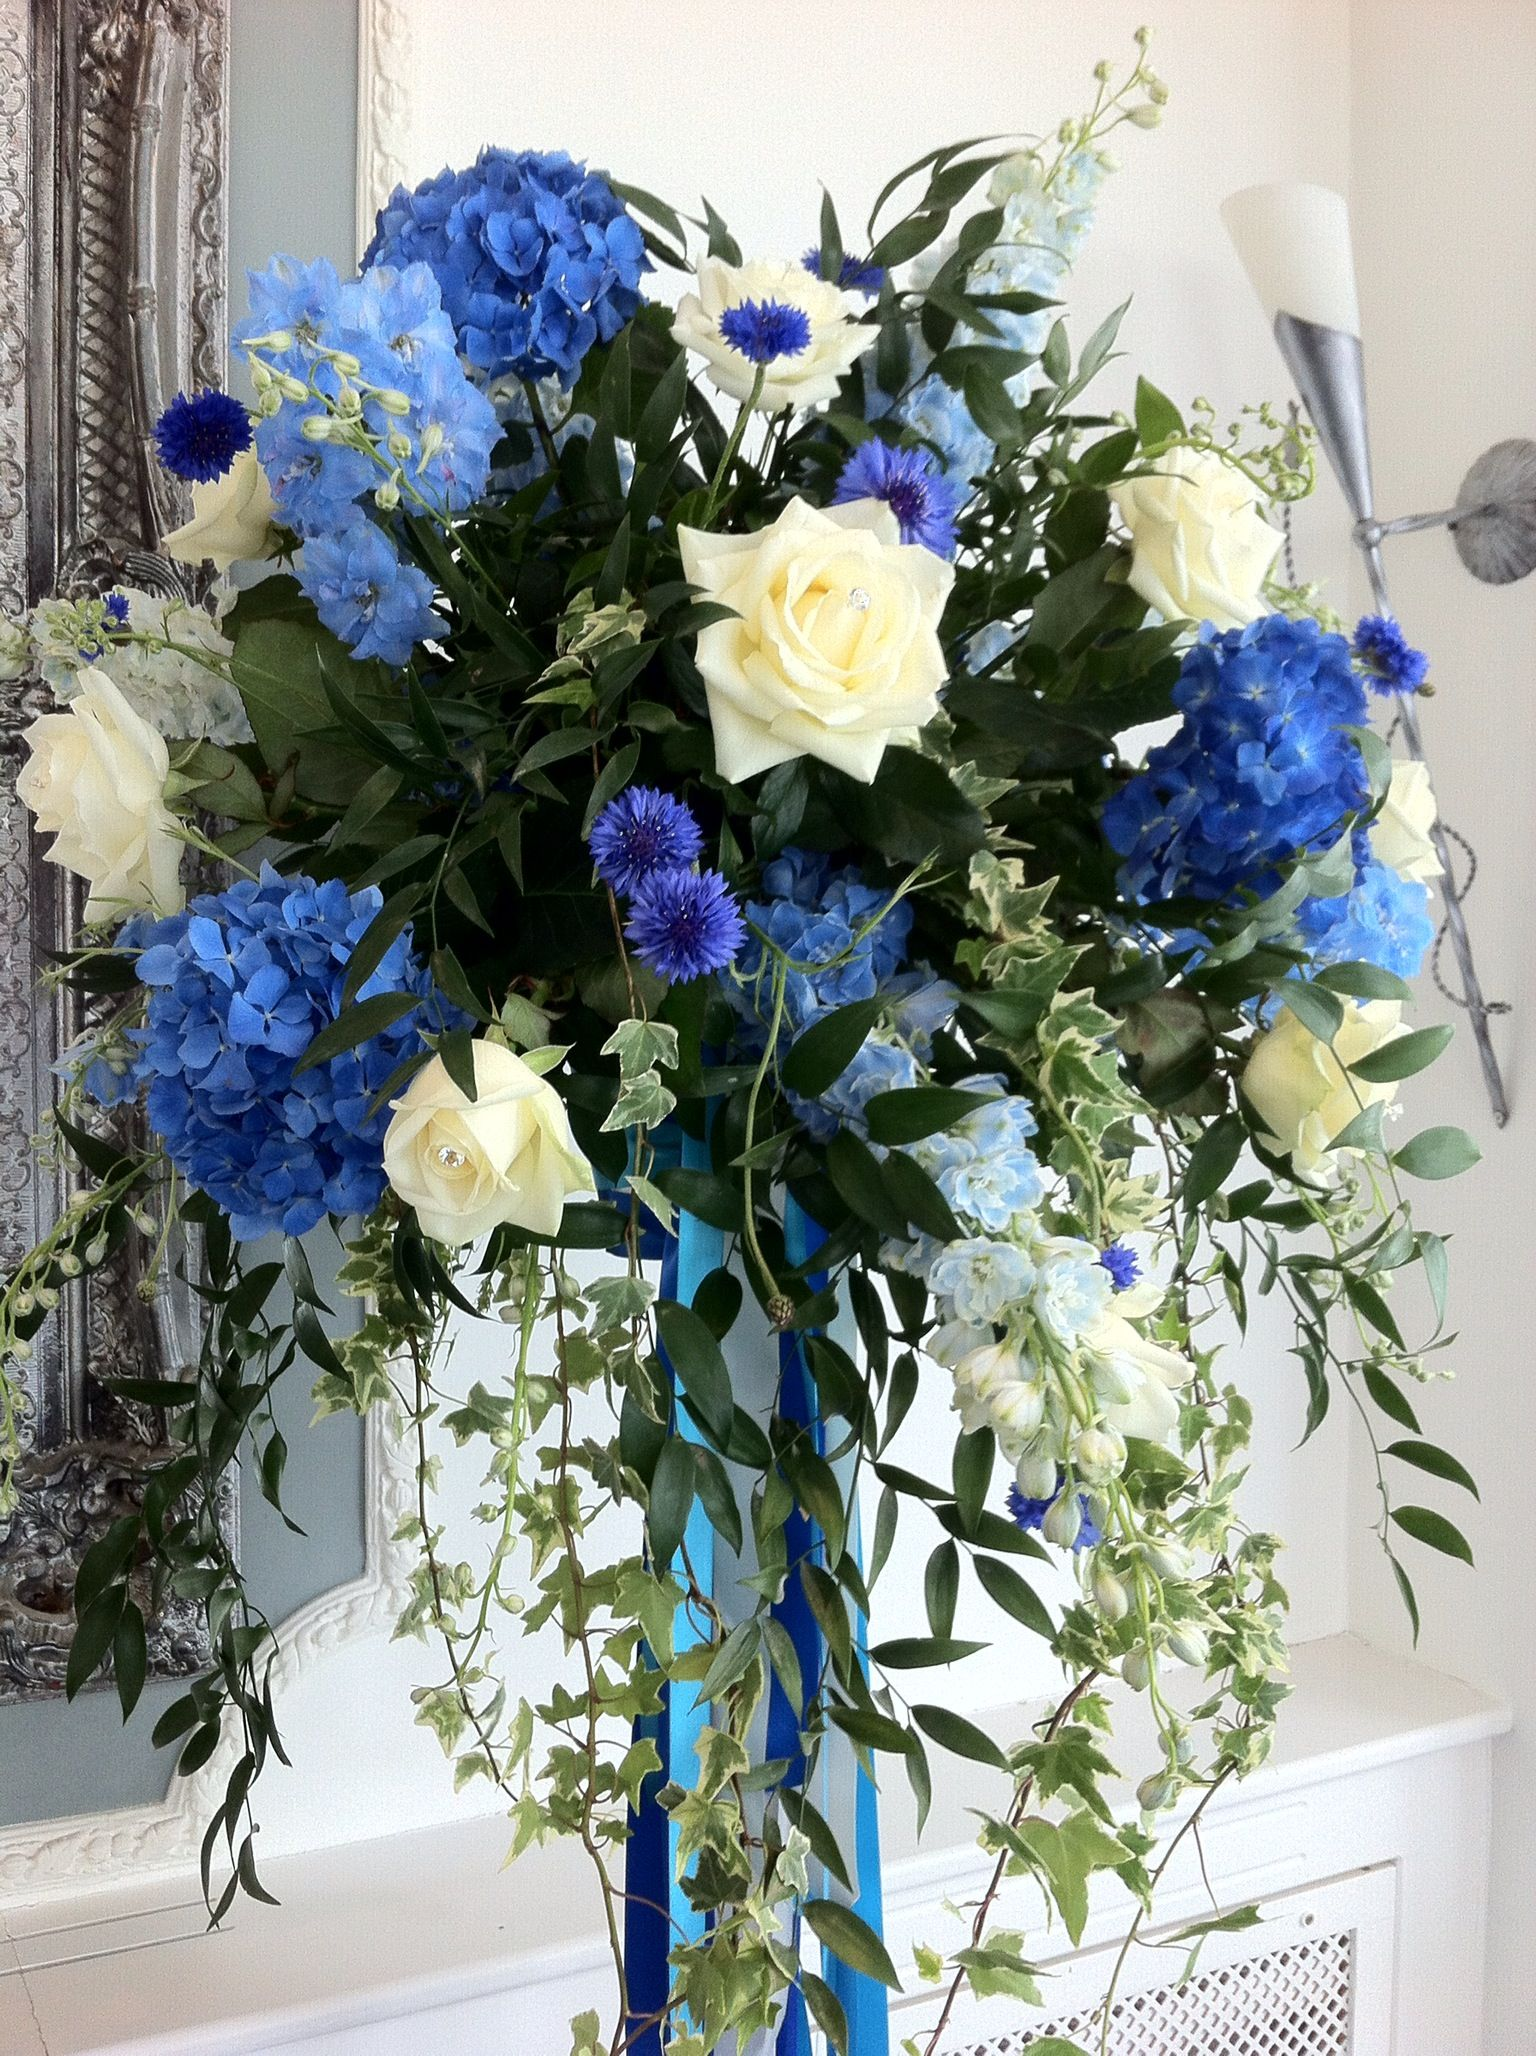 Flower ball pedestal of blue Delphiniums, Roses